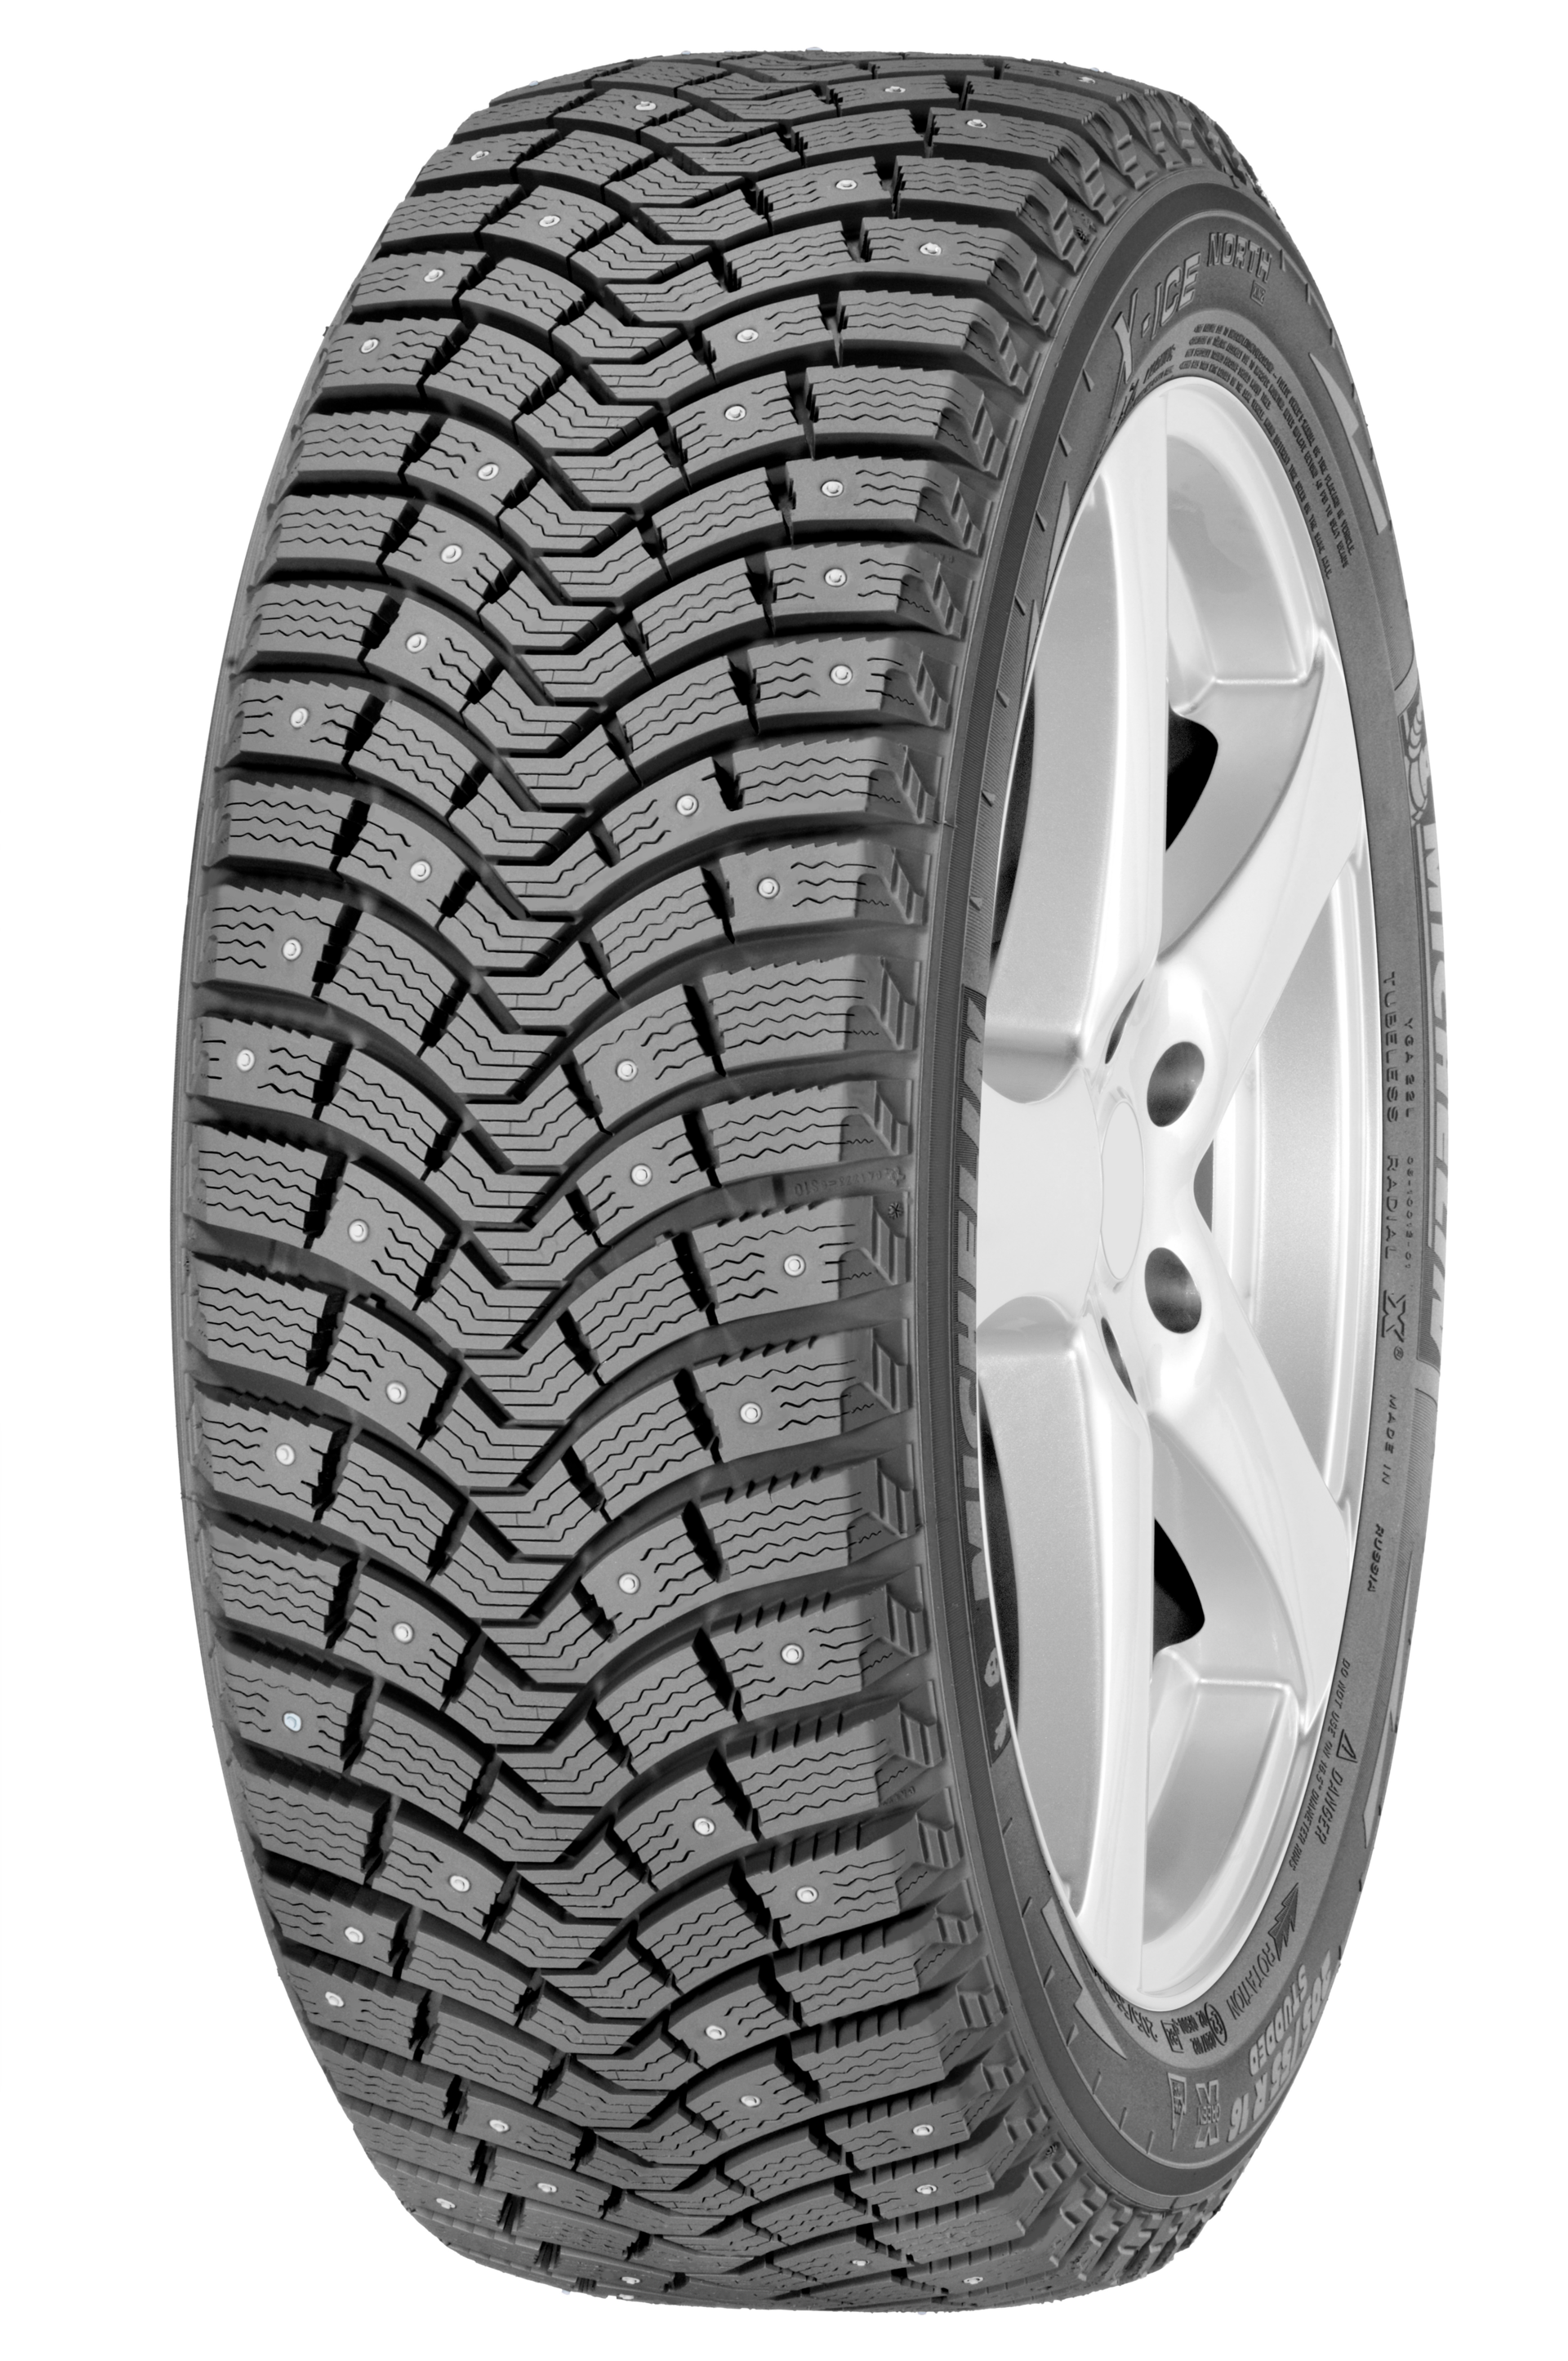 MICHELIN X-ICE North-2 205/55R16 94T XL шип